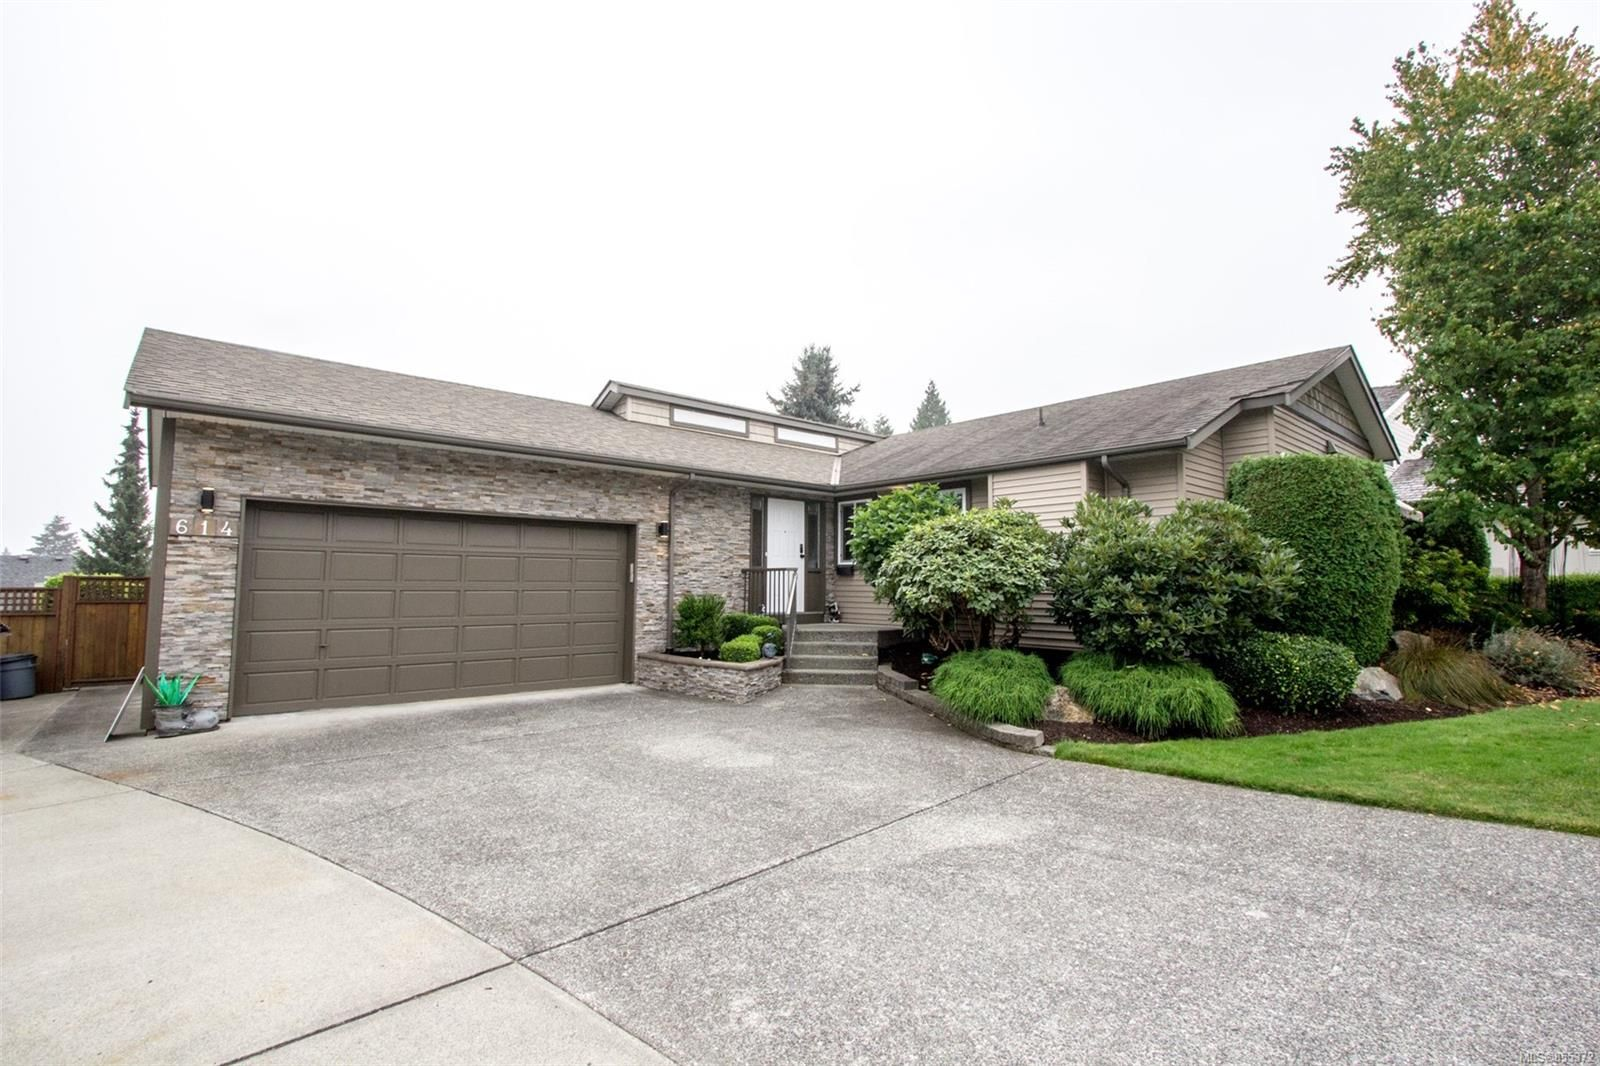 Main Photo: 614 Shaughnessy Pl in : Na Departure Bay House for sale (Nanaimo)  : MLS®# 855372